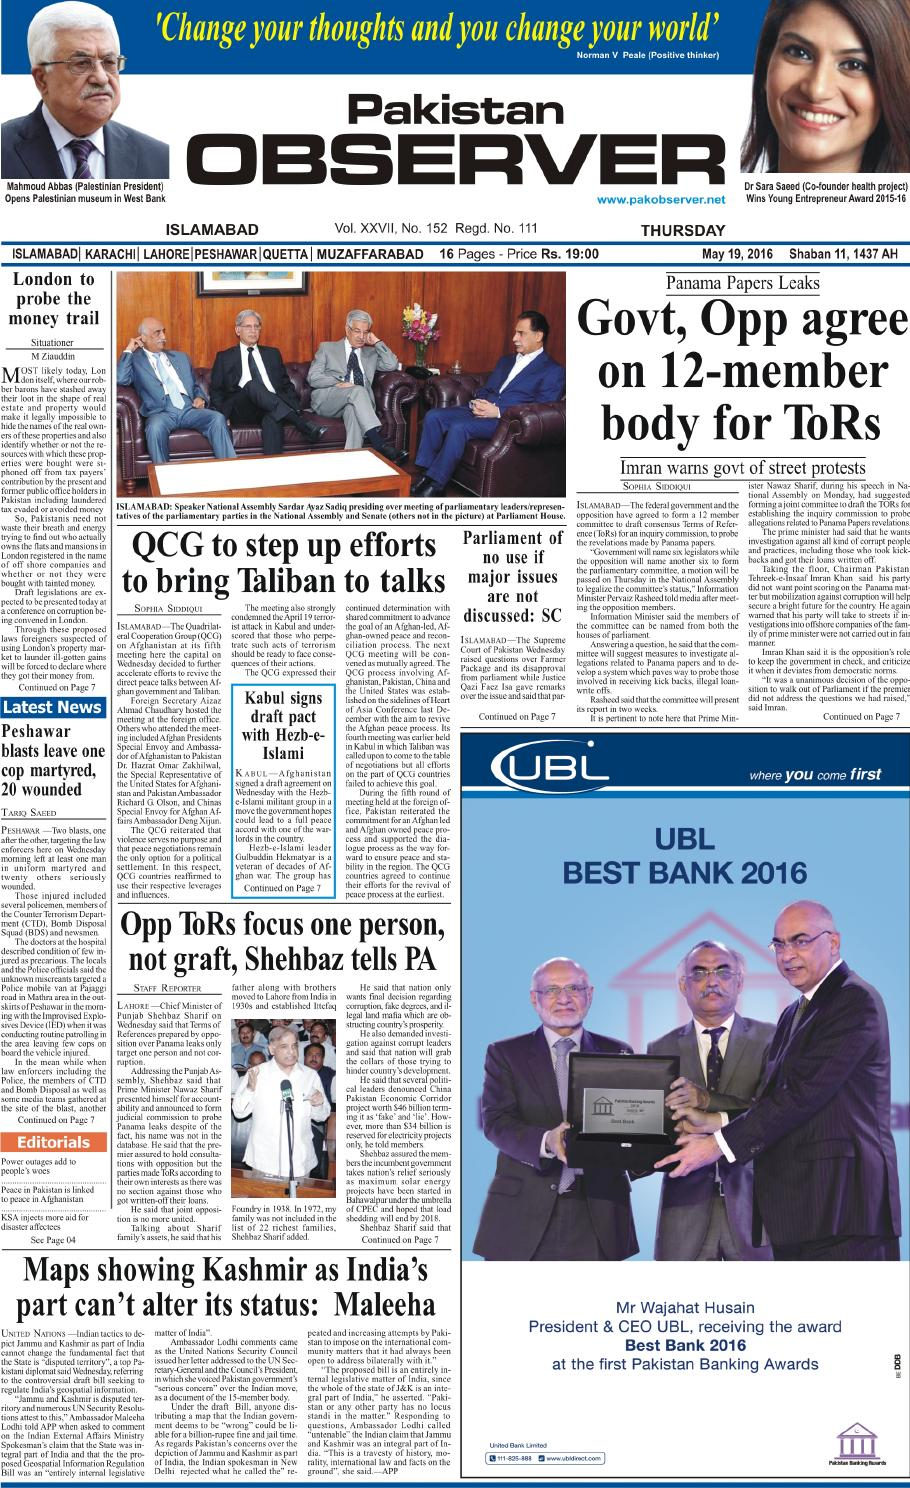 Ep2016may19 by Pakistan Observer - issuu